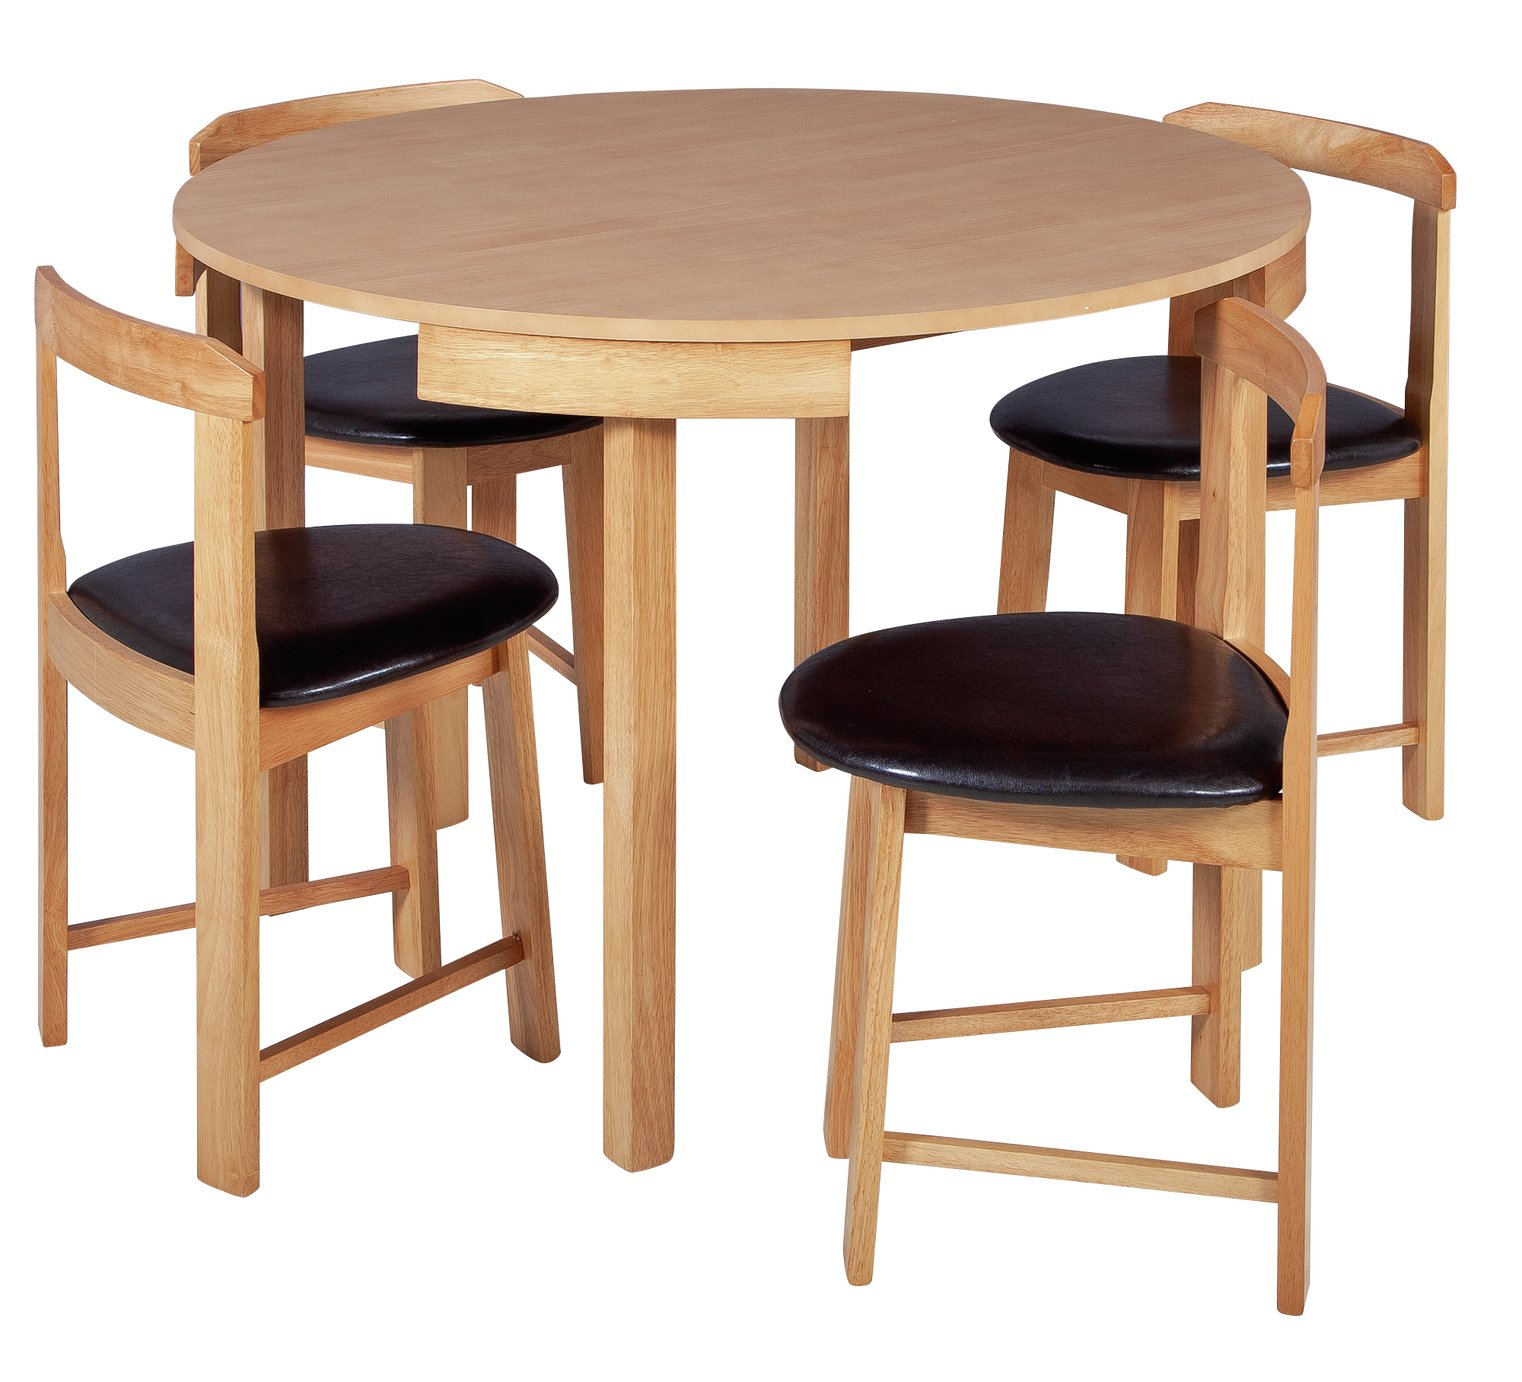 Argos Dining Table And Chairs Sale: SALE On Hygena Alena Circular Solid Wood Table & 4 Chairs